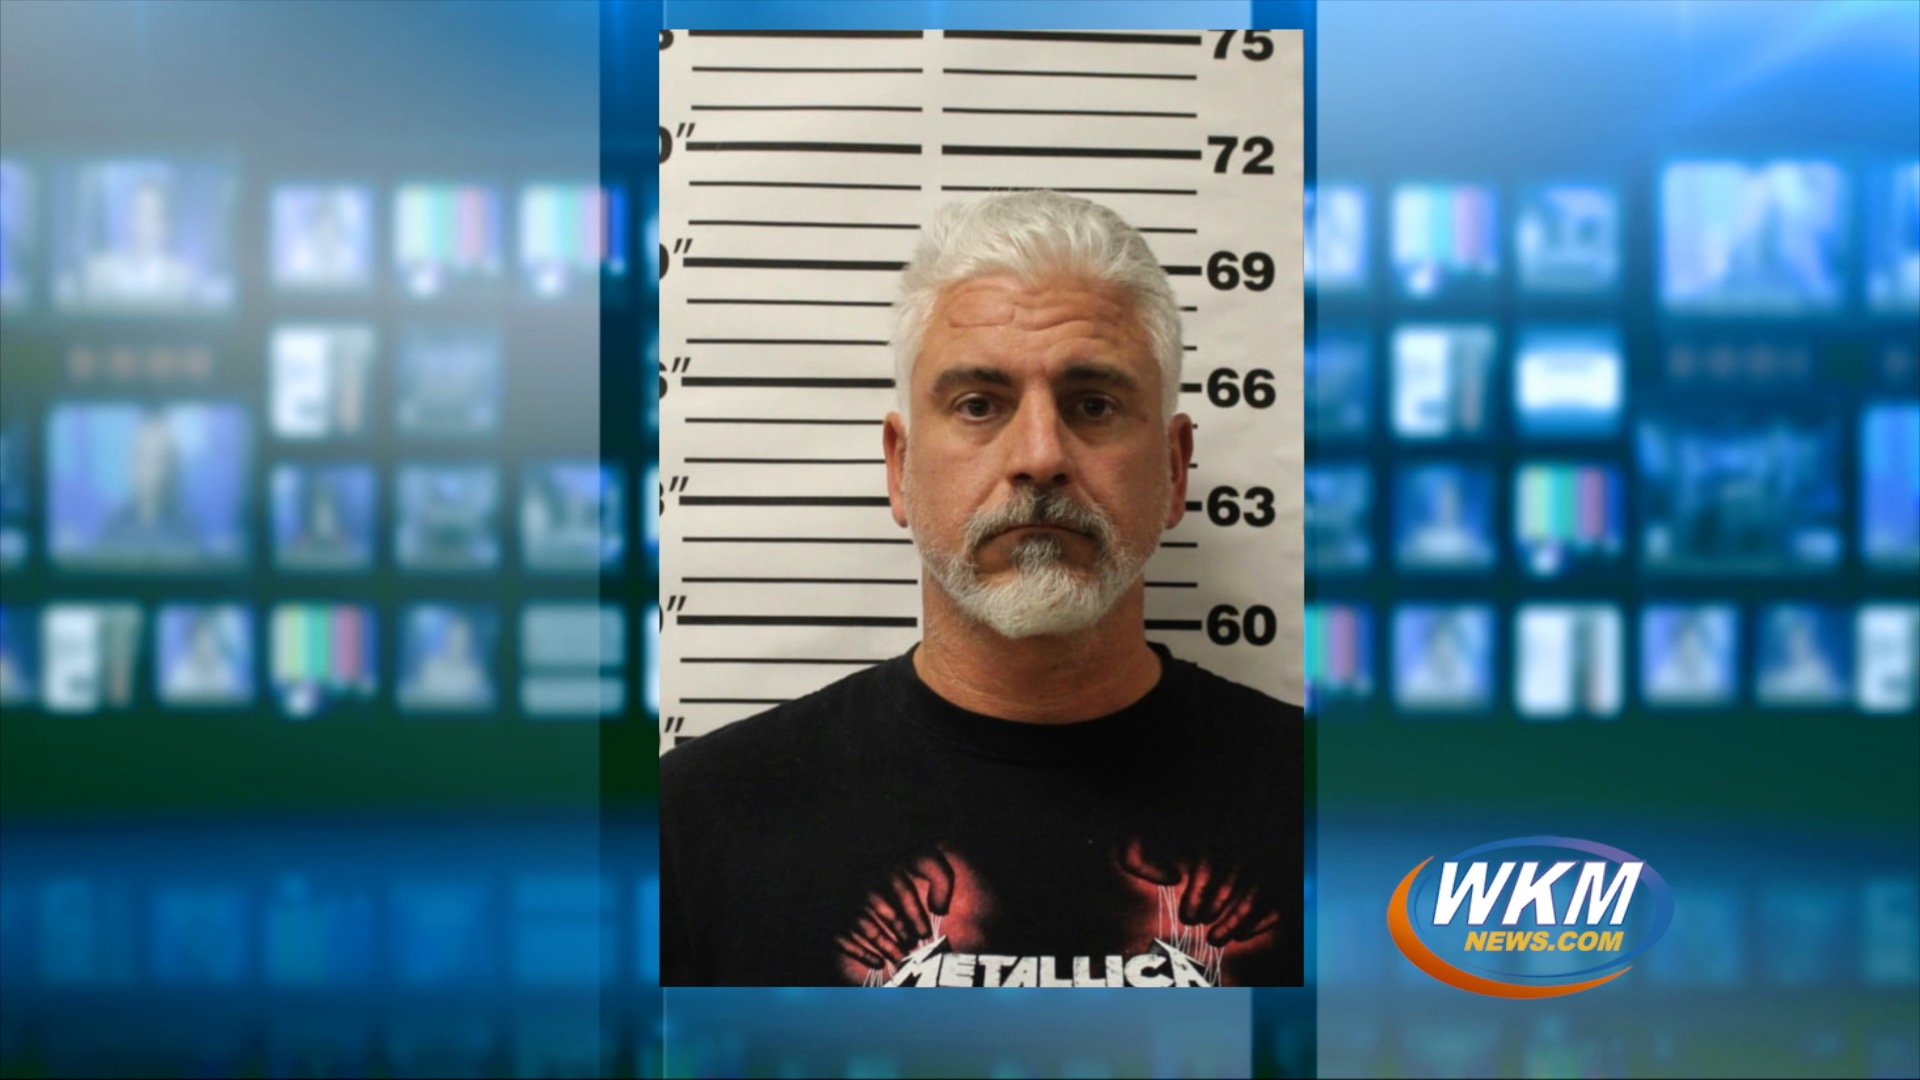 Madison Man Arrested for Two Counts of Child Molesting